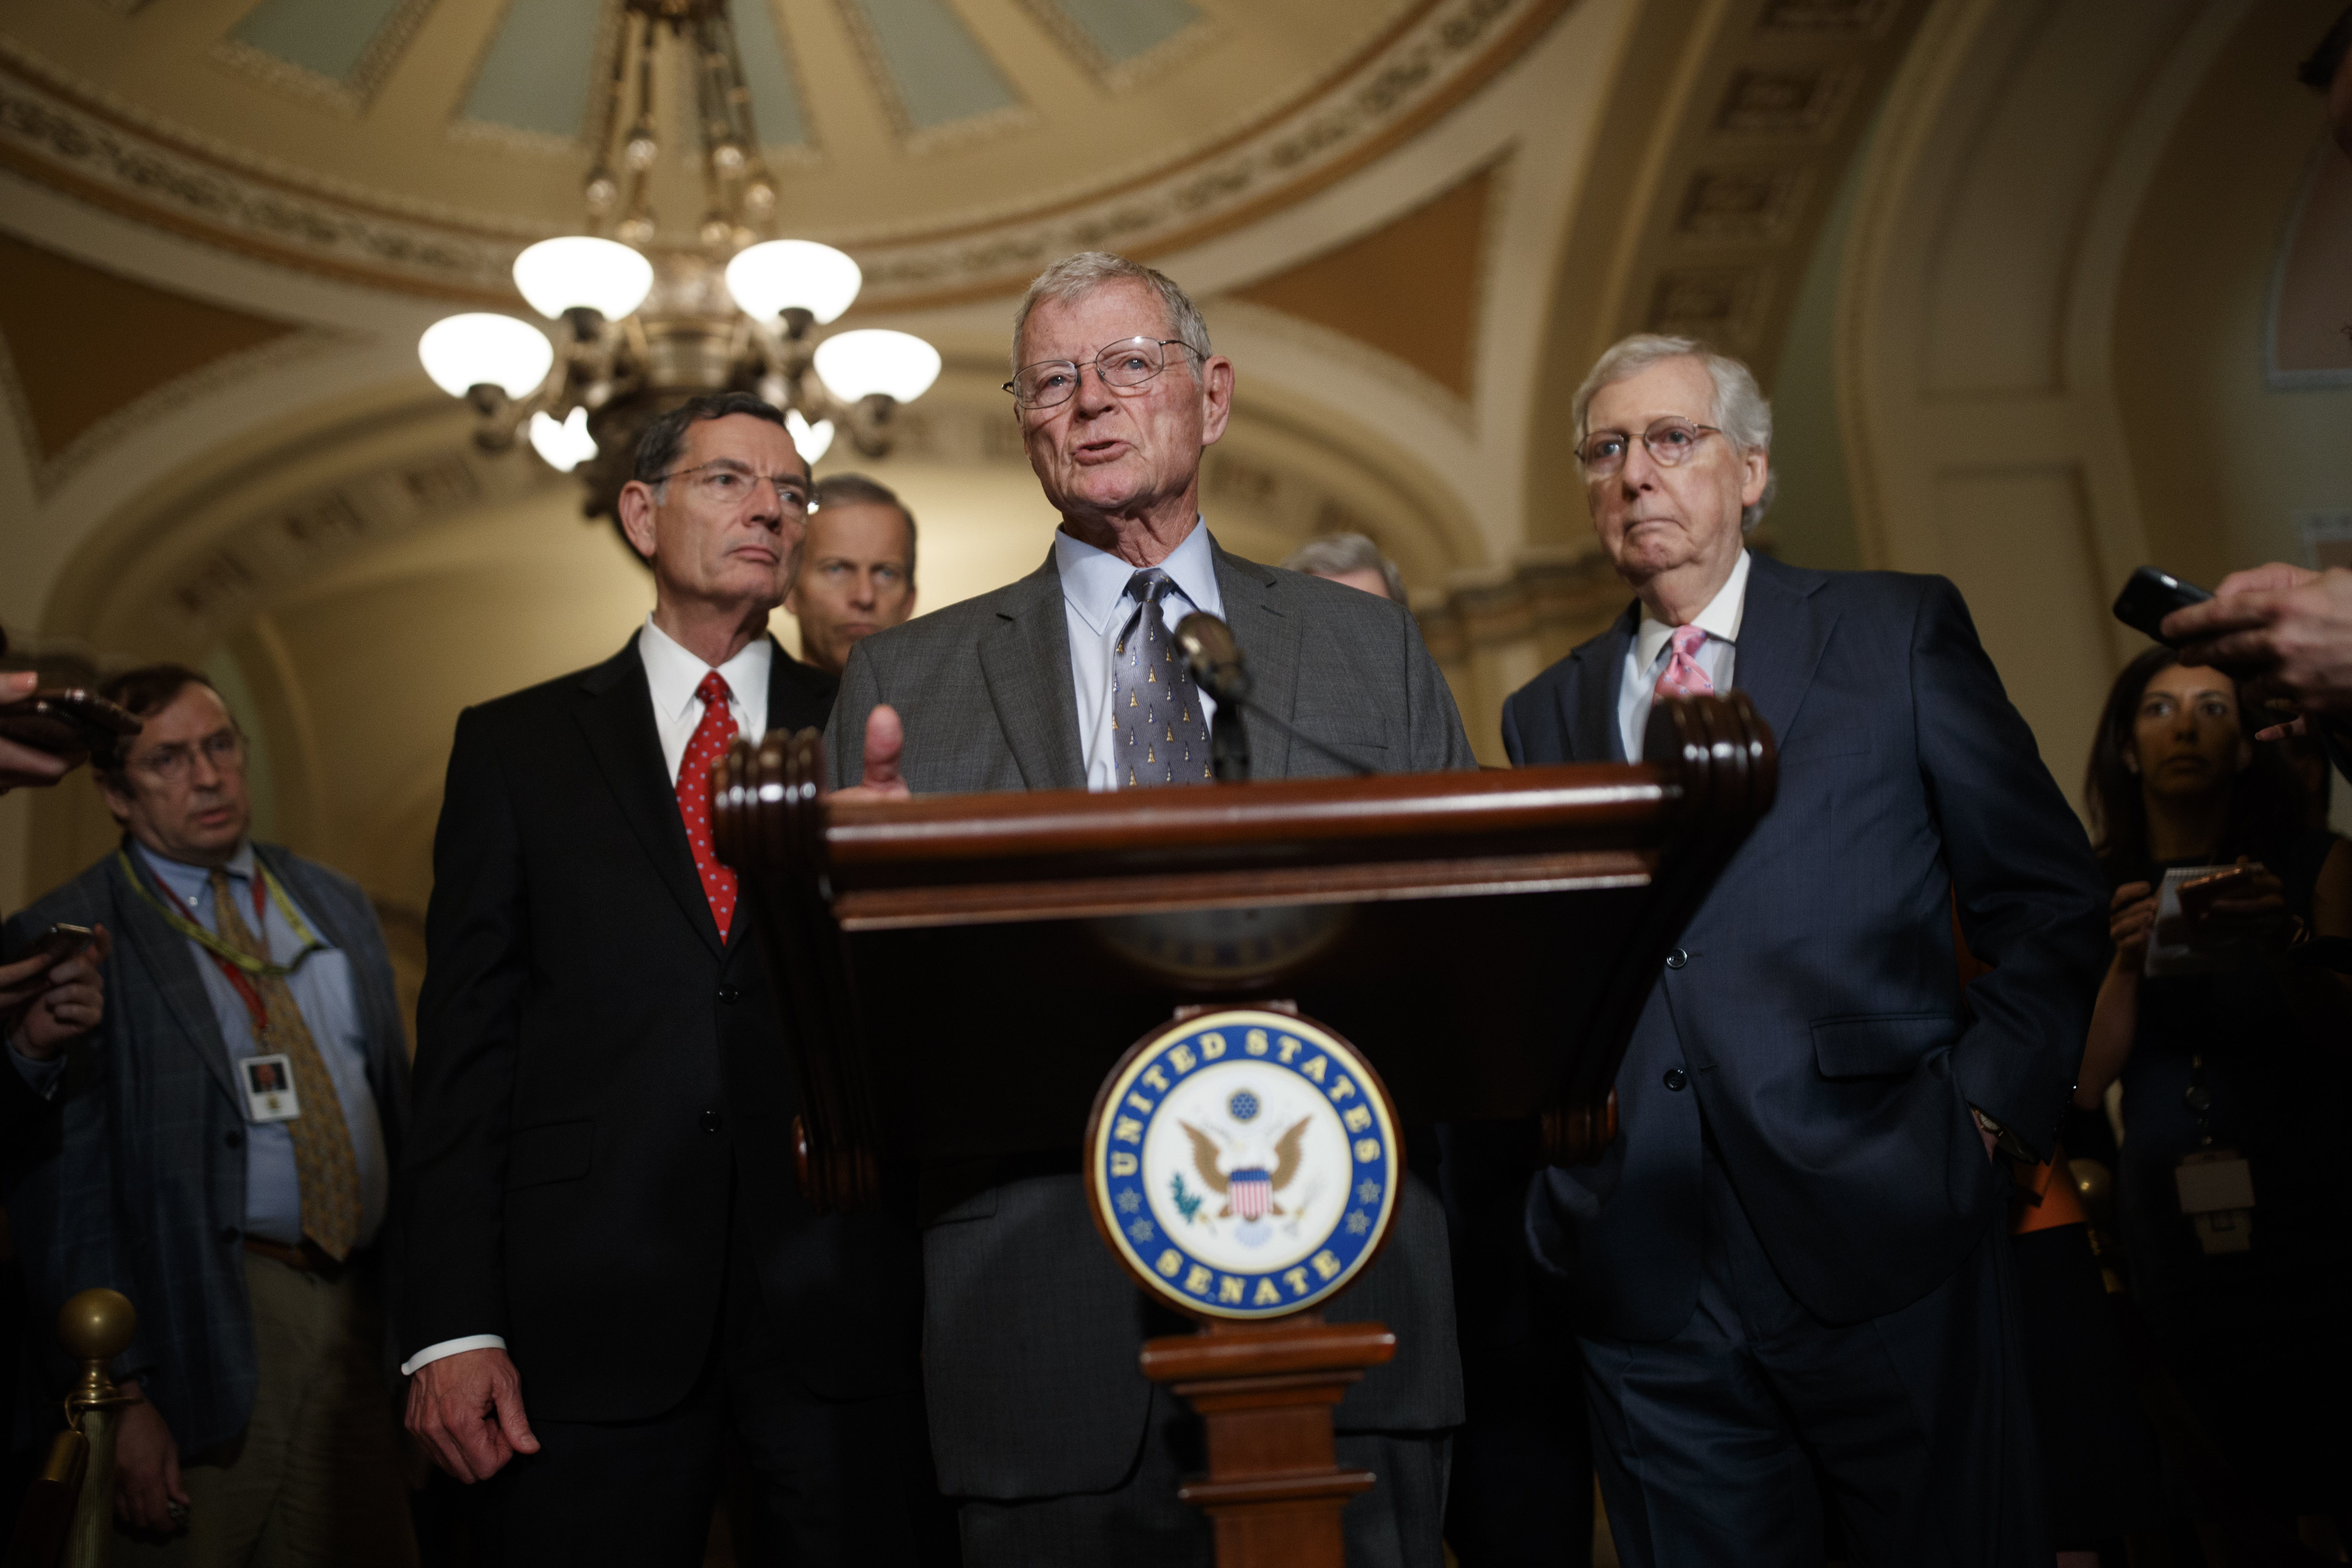 WASHINGTON, DC - JUNE 25: Senator Jim Inhofe, R-Okla., delivers remarks about the 2020 National Defense Authorization Act during the Weekly Senate Policy Luncheon Press Conferences on June 25, 2019 on Capitol Hill in Washington, DC. (Photo by Tom Brenner/Getty Images)